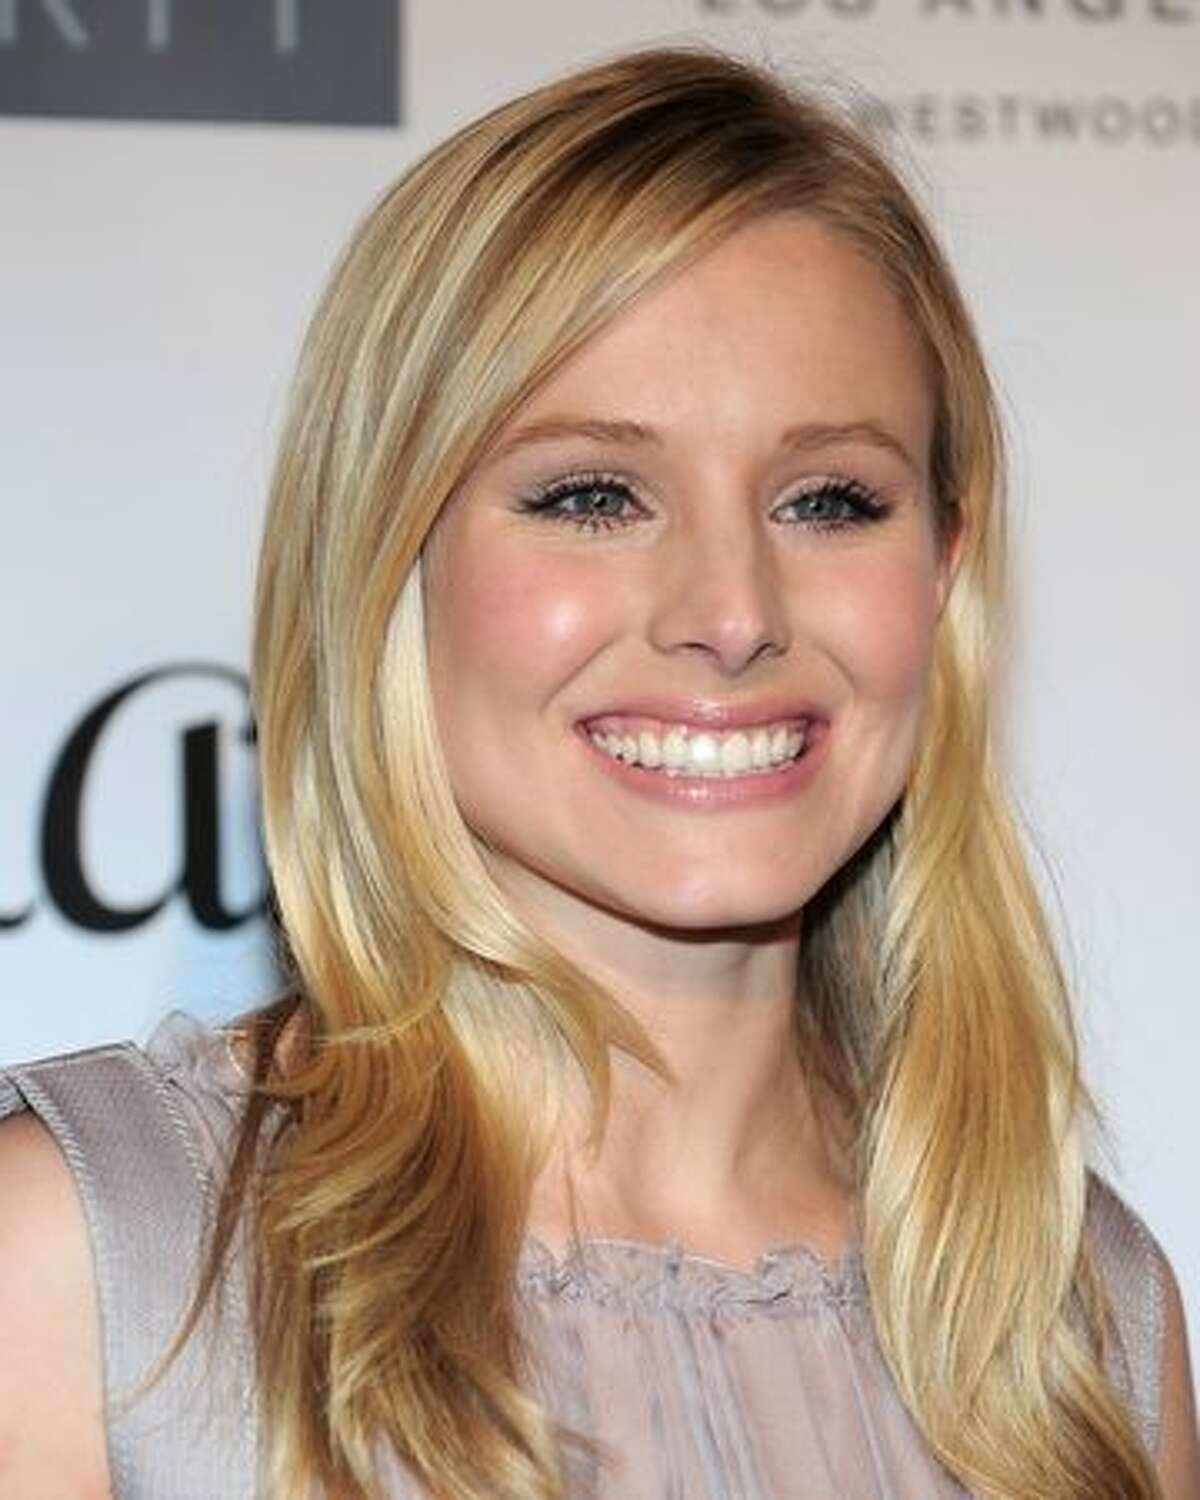 Actress Kristen Bell poses on the red carpet at the Geffen Playhouse's Annual Backstage at the Geffen Gala in Los Angeles, California.